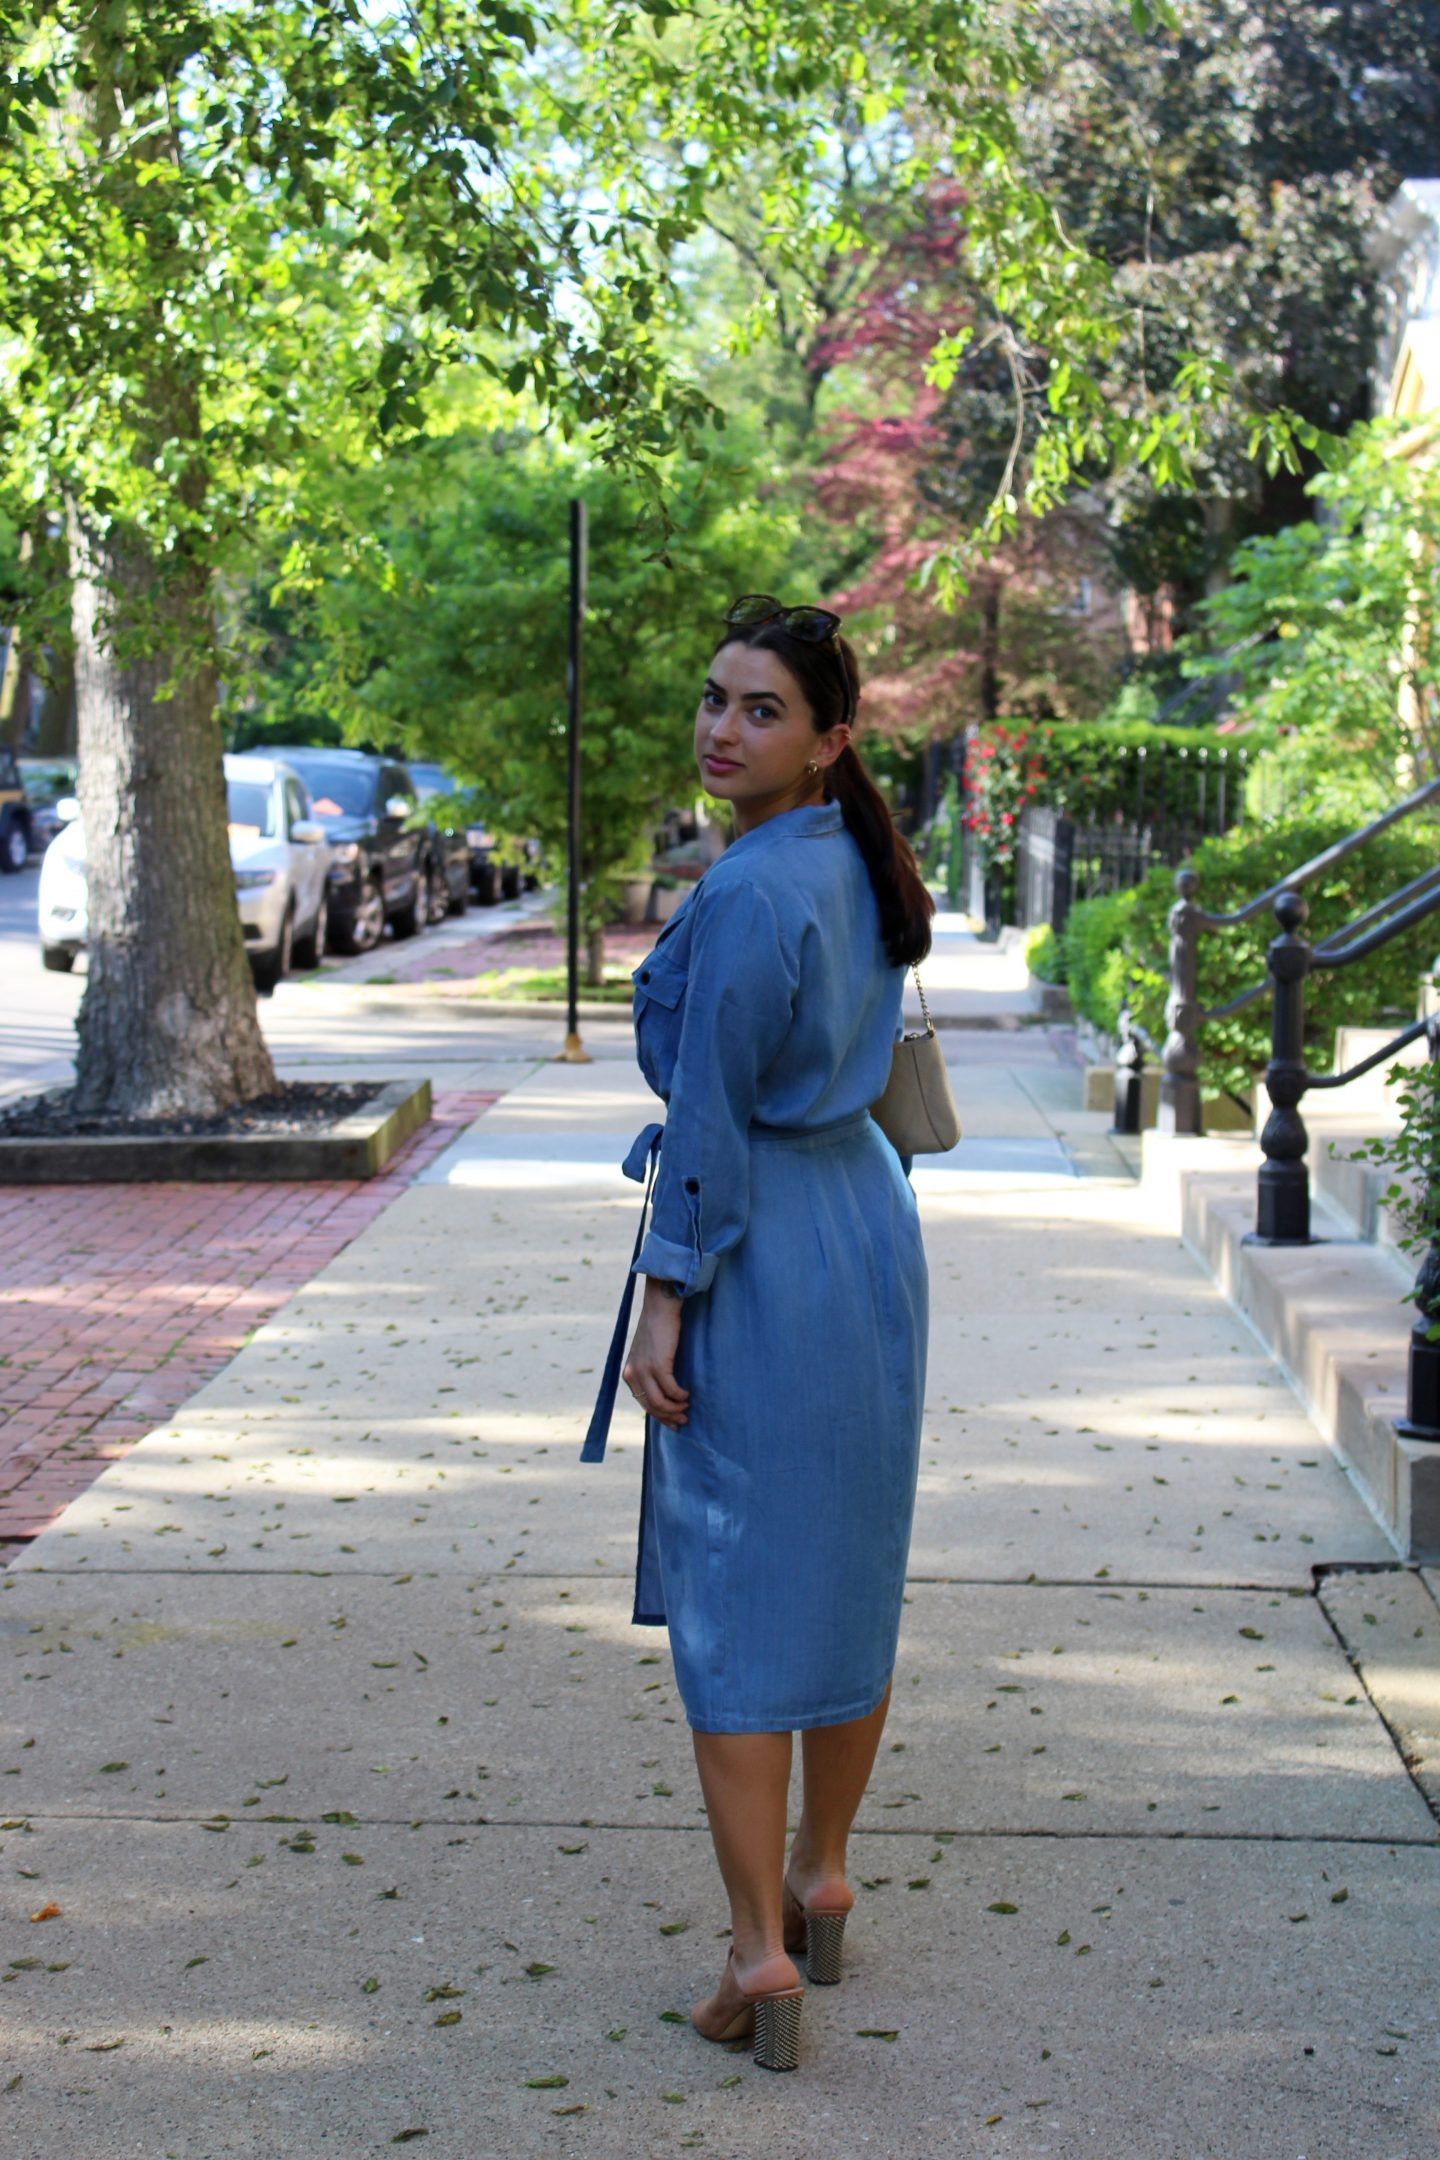 The Bellezza Corner wrap dress walking down the sidewalk